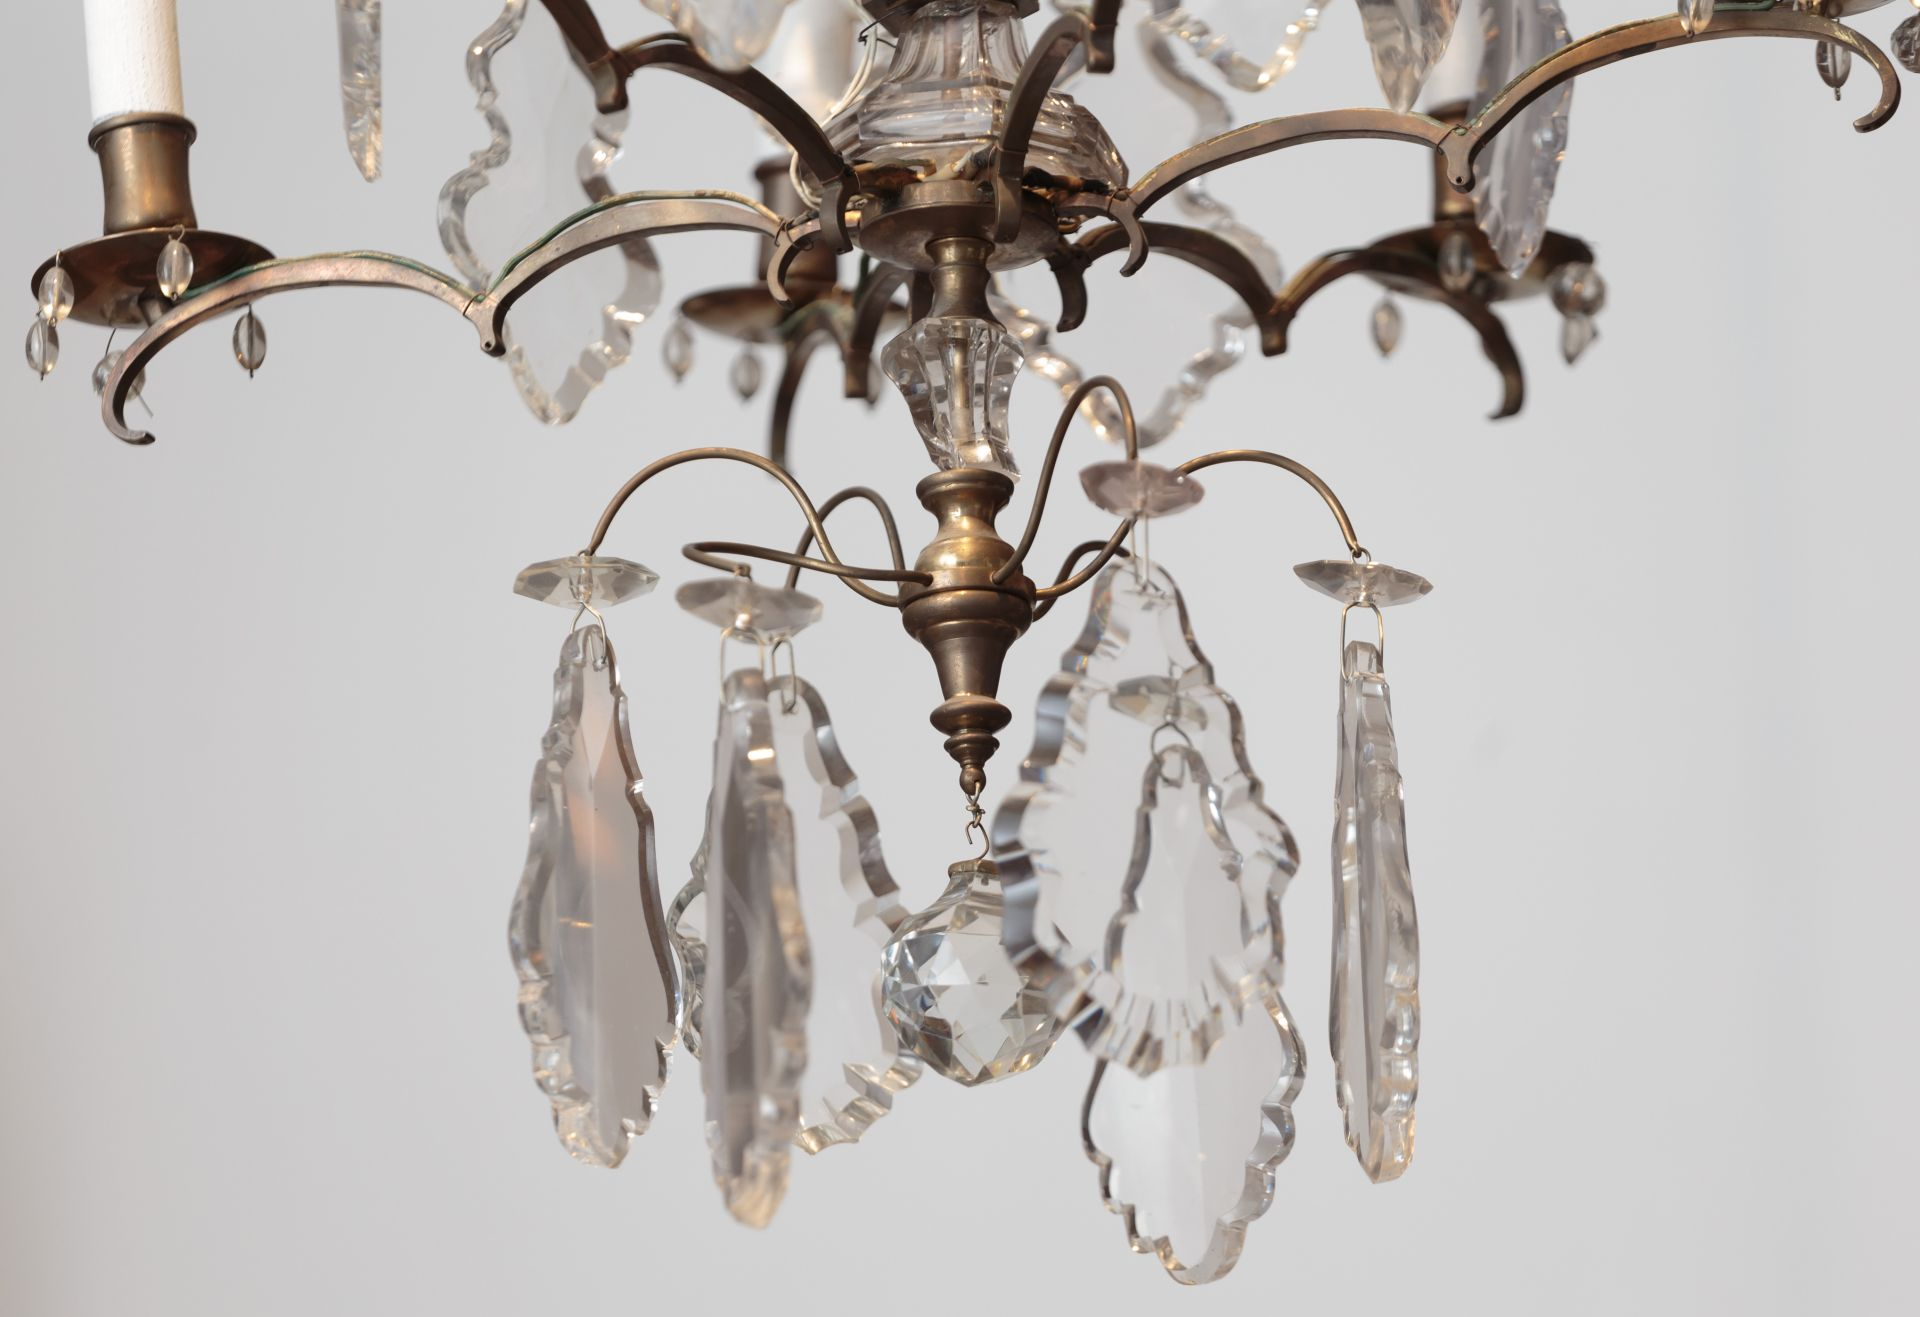 Fragment of chandelier, 1887–1911, Lithuanian National Museum of Art, TM-840. Photo by Tomas Kapočius, 2017